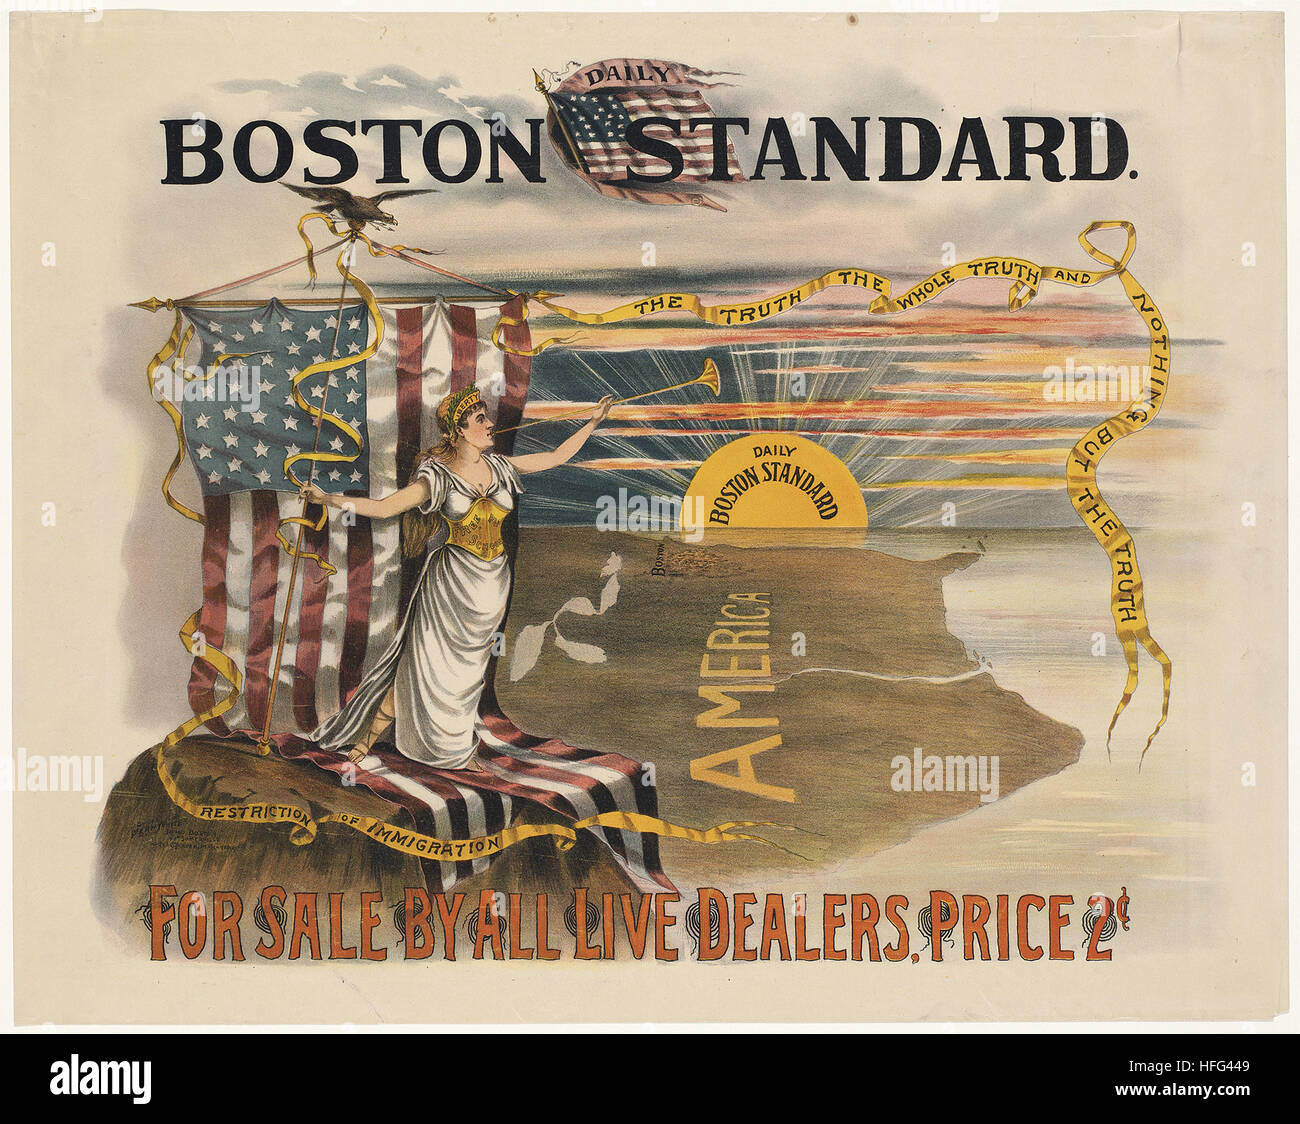 Daily Boston standard for sale by all live dealers - Stock Image